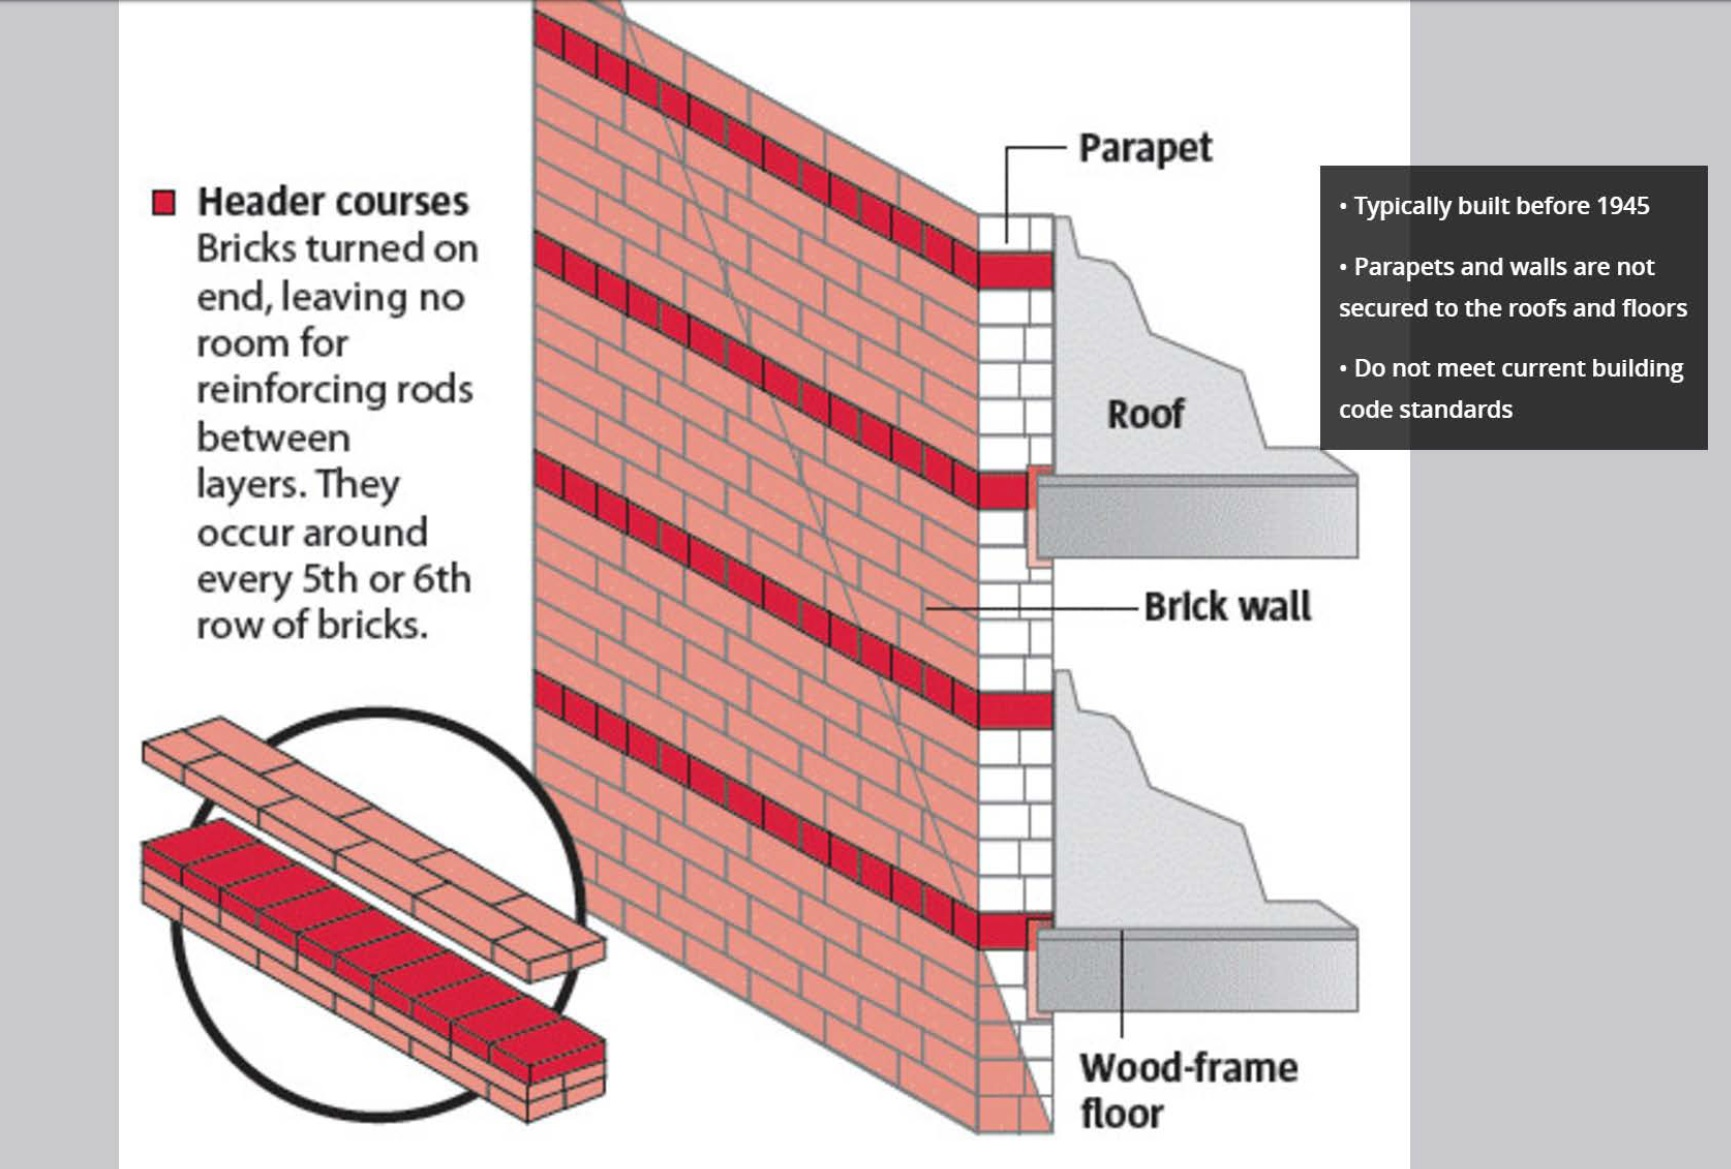 So Long As The Earth Stays Put, Thatu0027s Fine, But In An Earthquake With  Horizontal Shaking, Those Floors And Roofs Can Disconnect From The Walls.